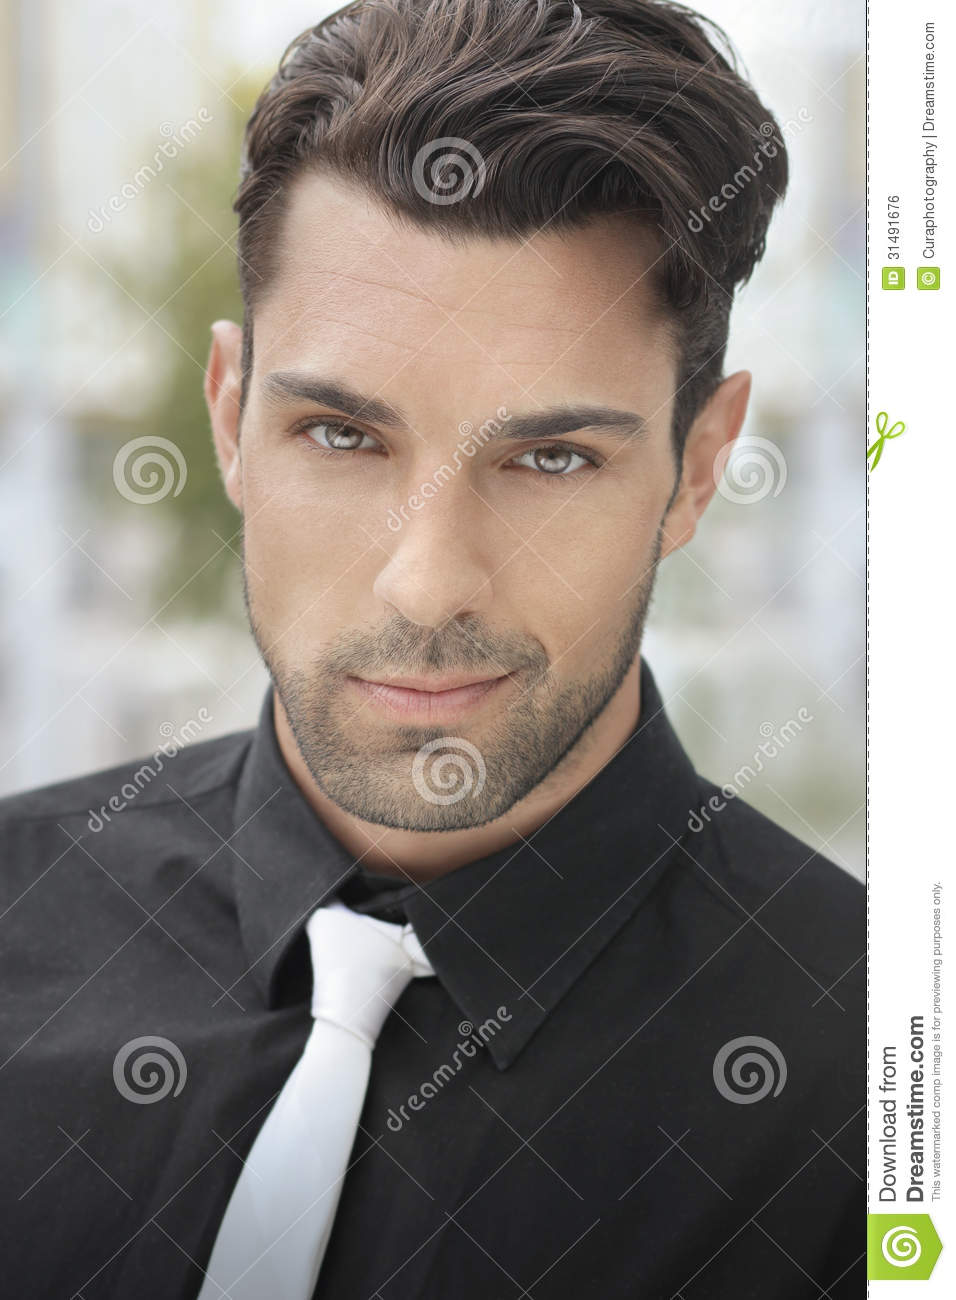 Good-looking Young Man Royalty Free Stock Image - Image ...  Good Looking Young Man